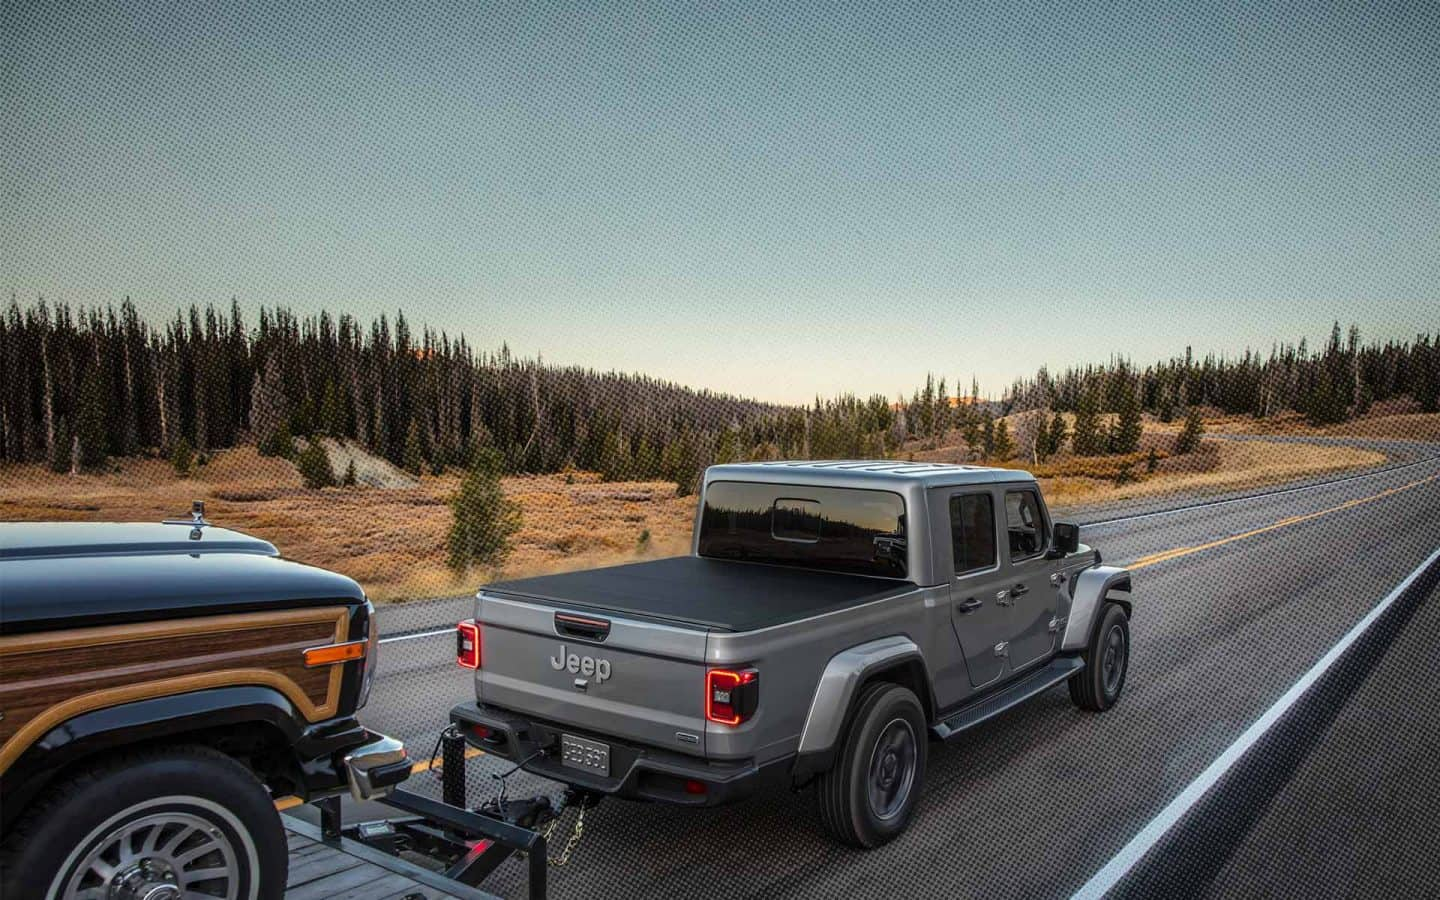 hight resolution of 2020 jeep gladiator towing and storage utilities mix grey gladiator towing a boat on a 2